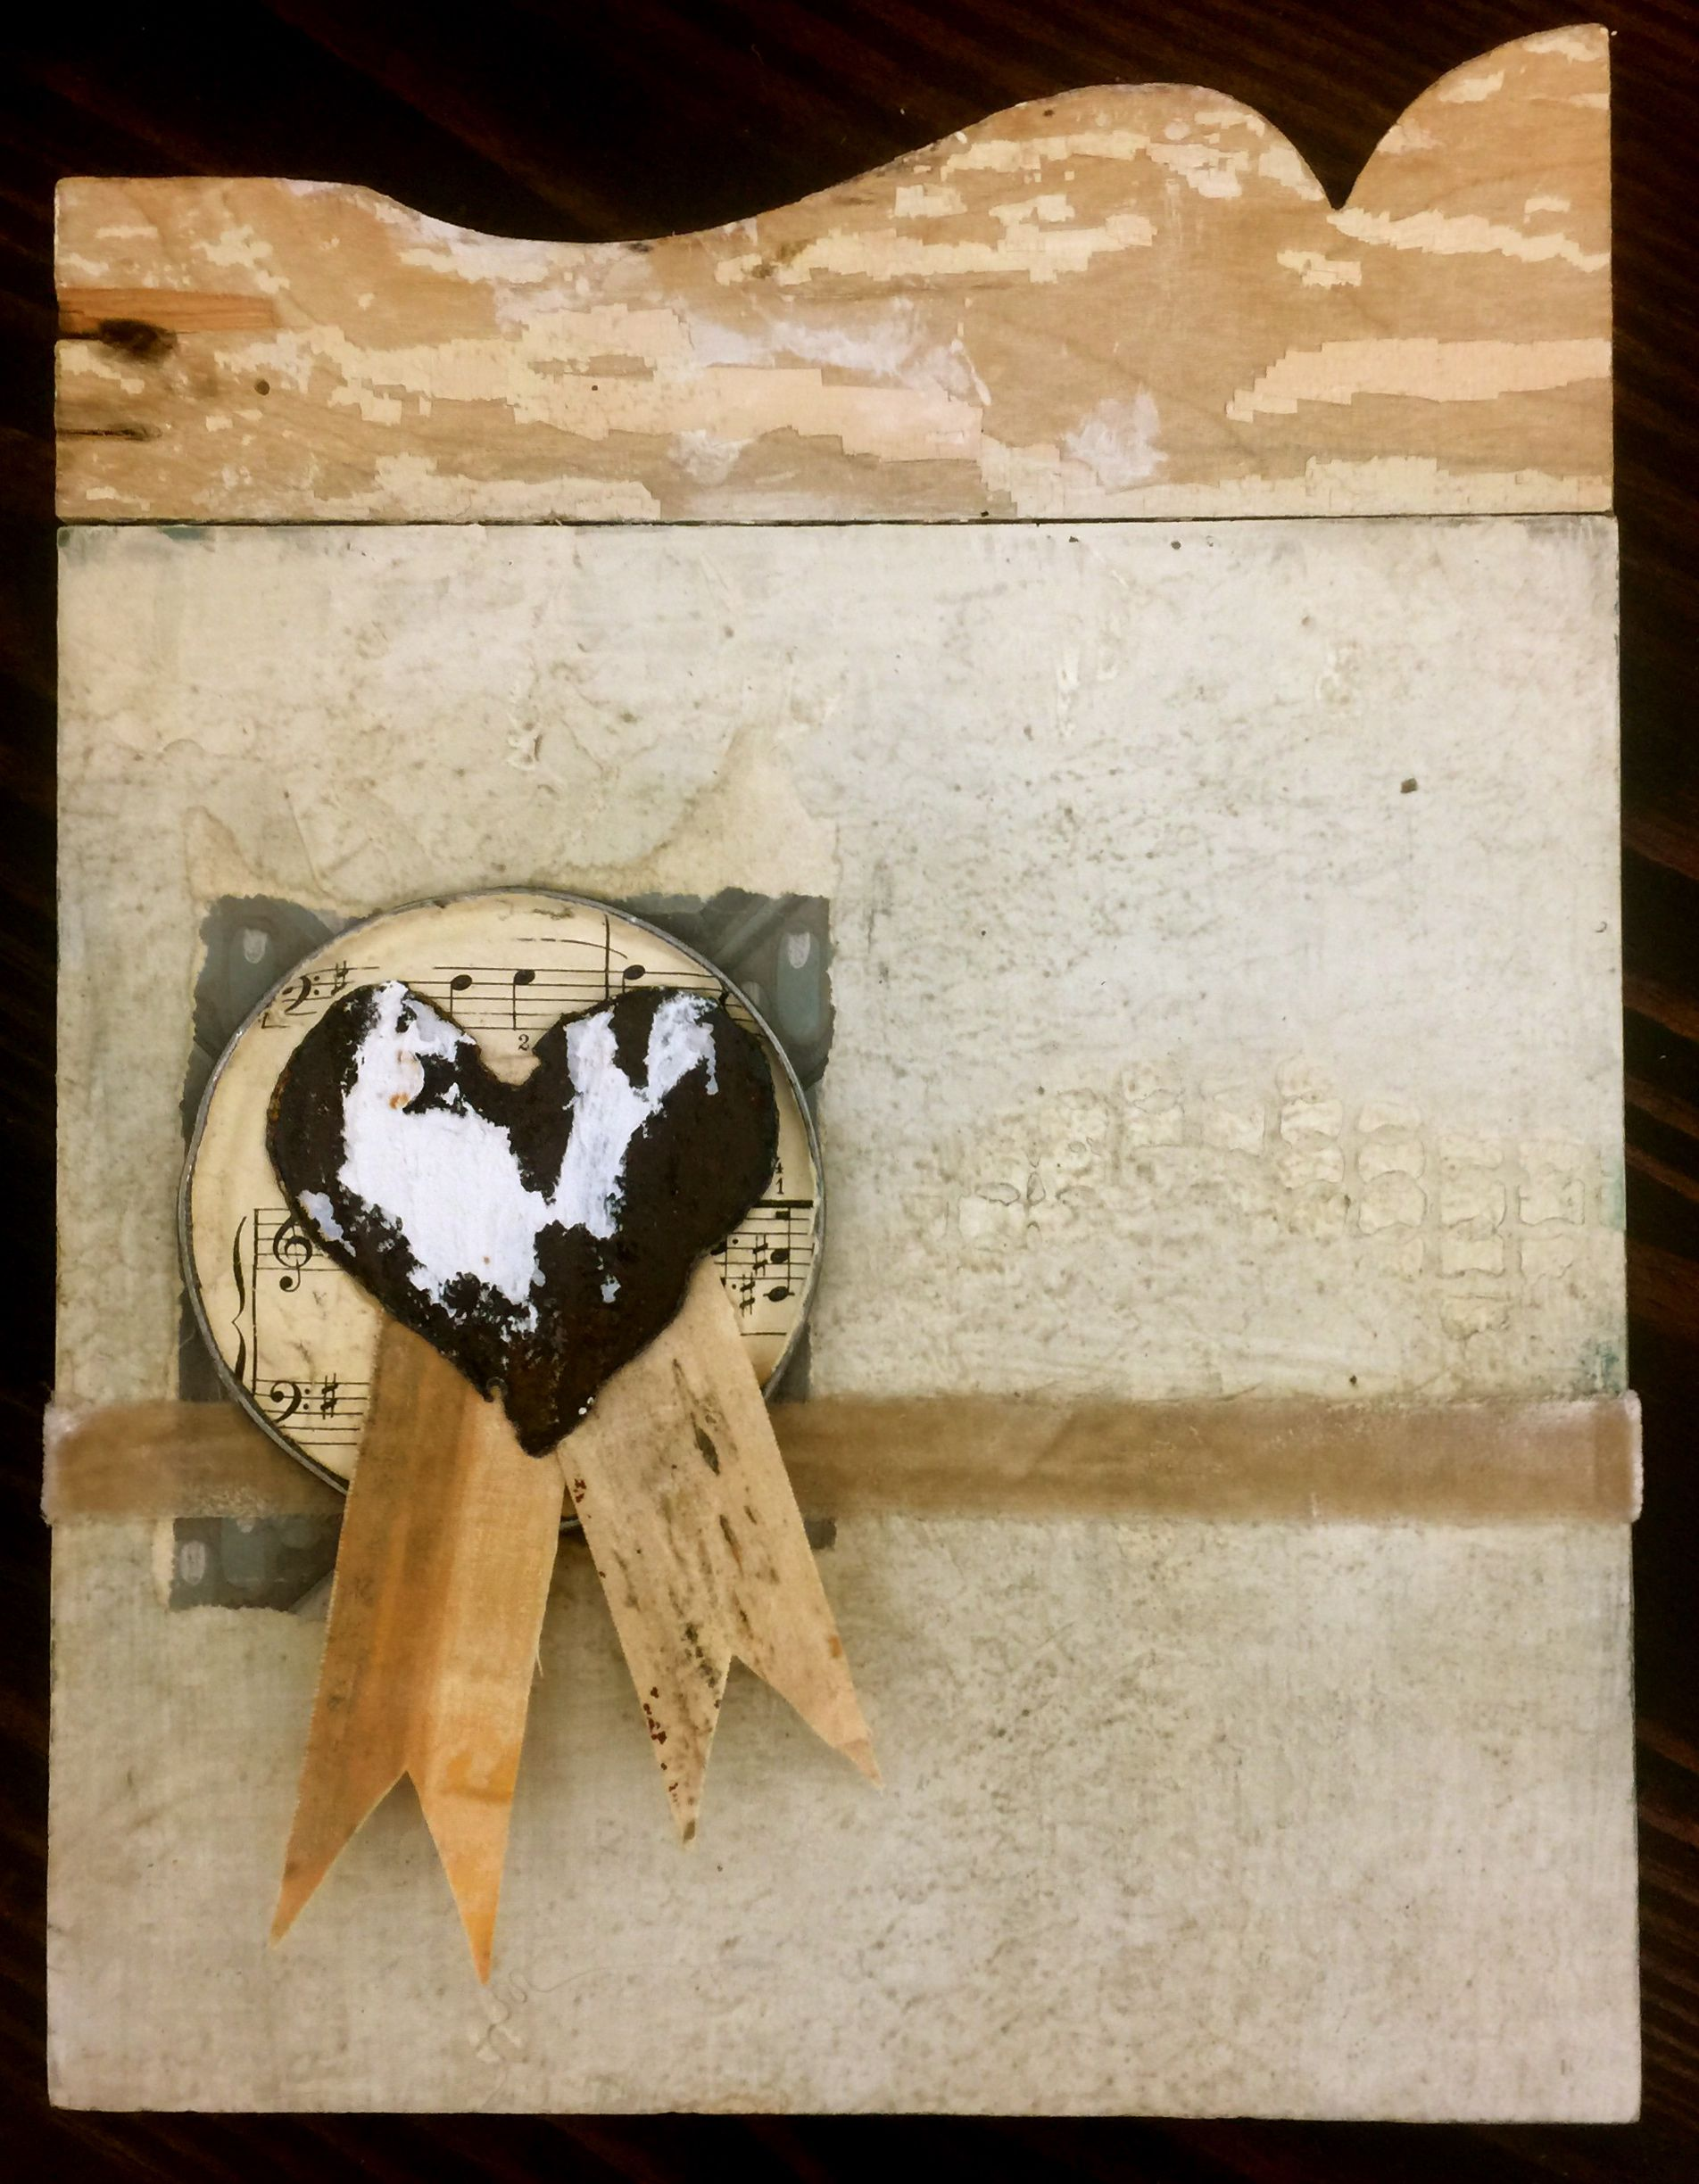 Mixed media heart with salvaged materials